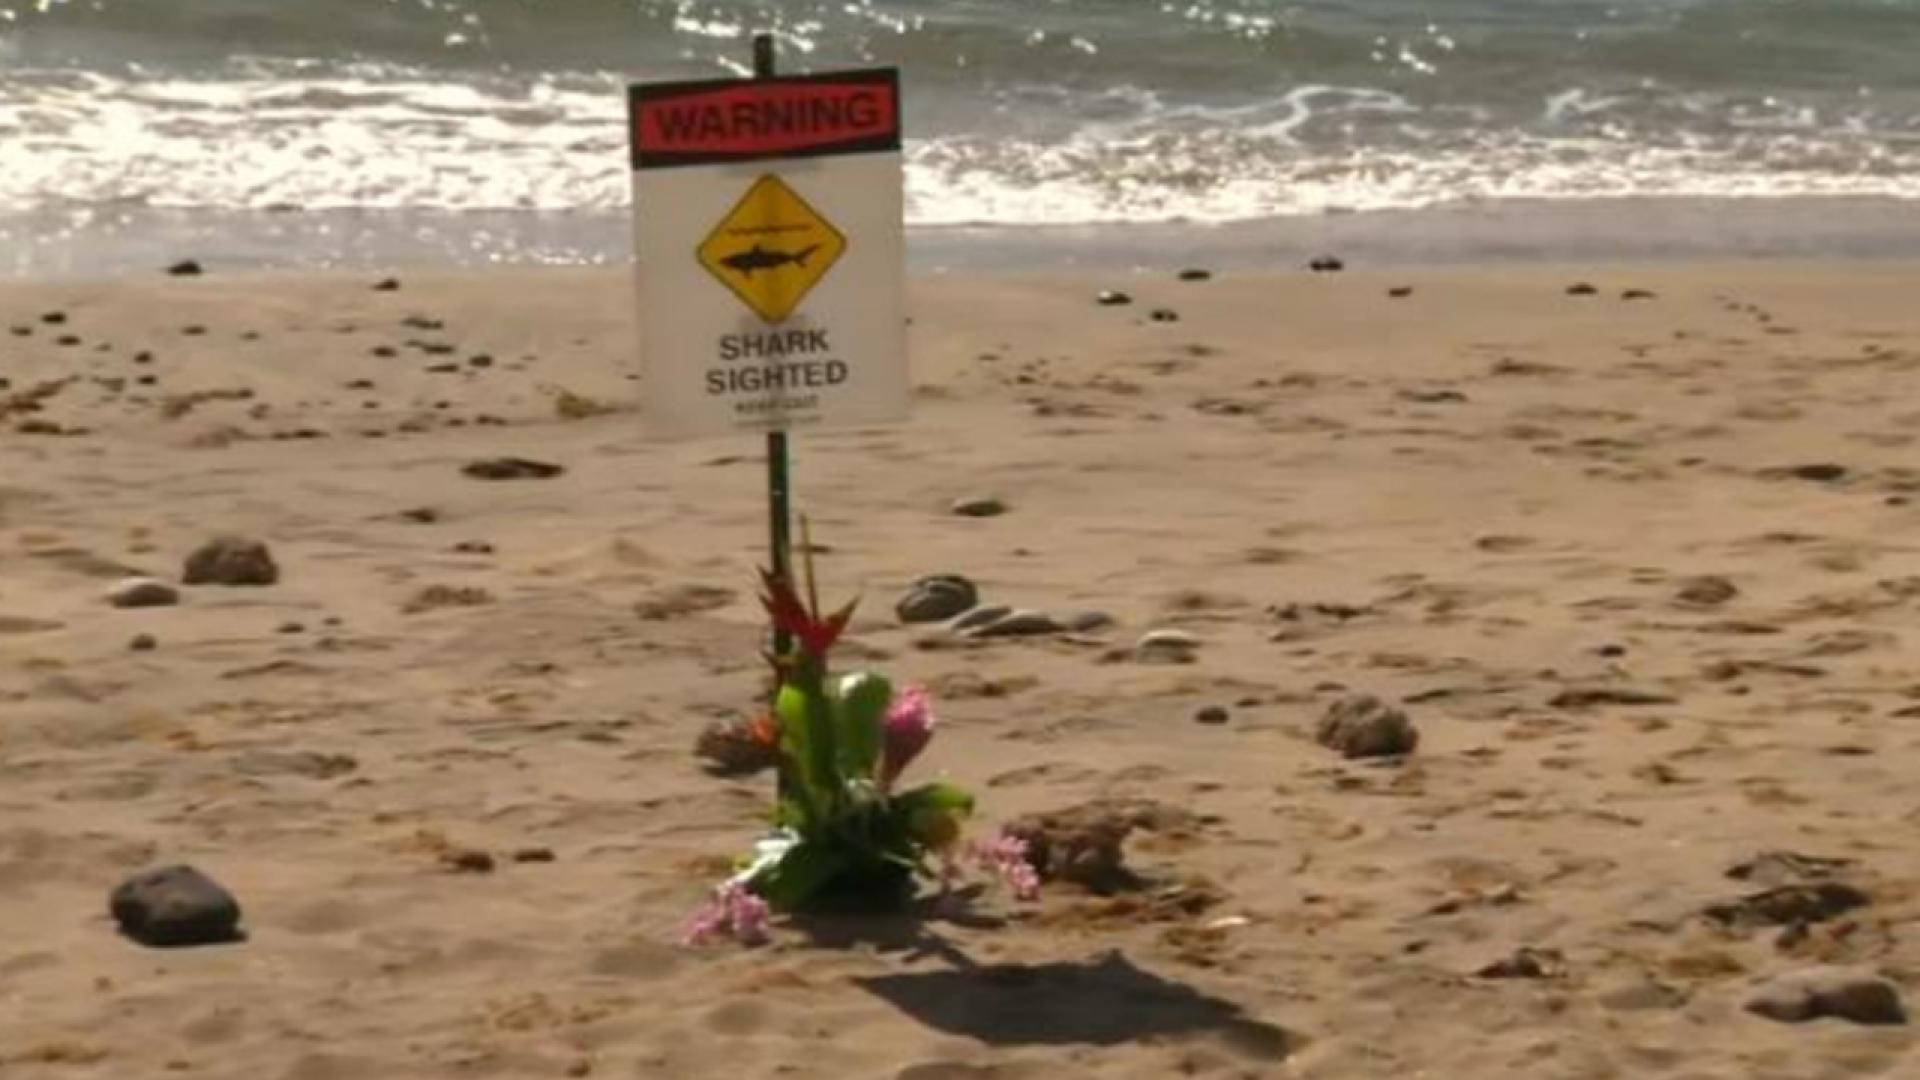 A warning posted on a beach in Maui after a shark attack is seen here.